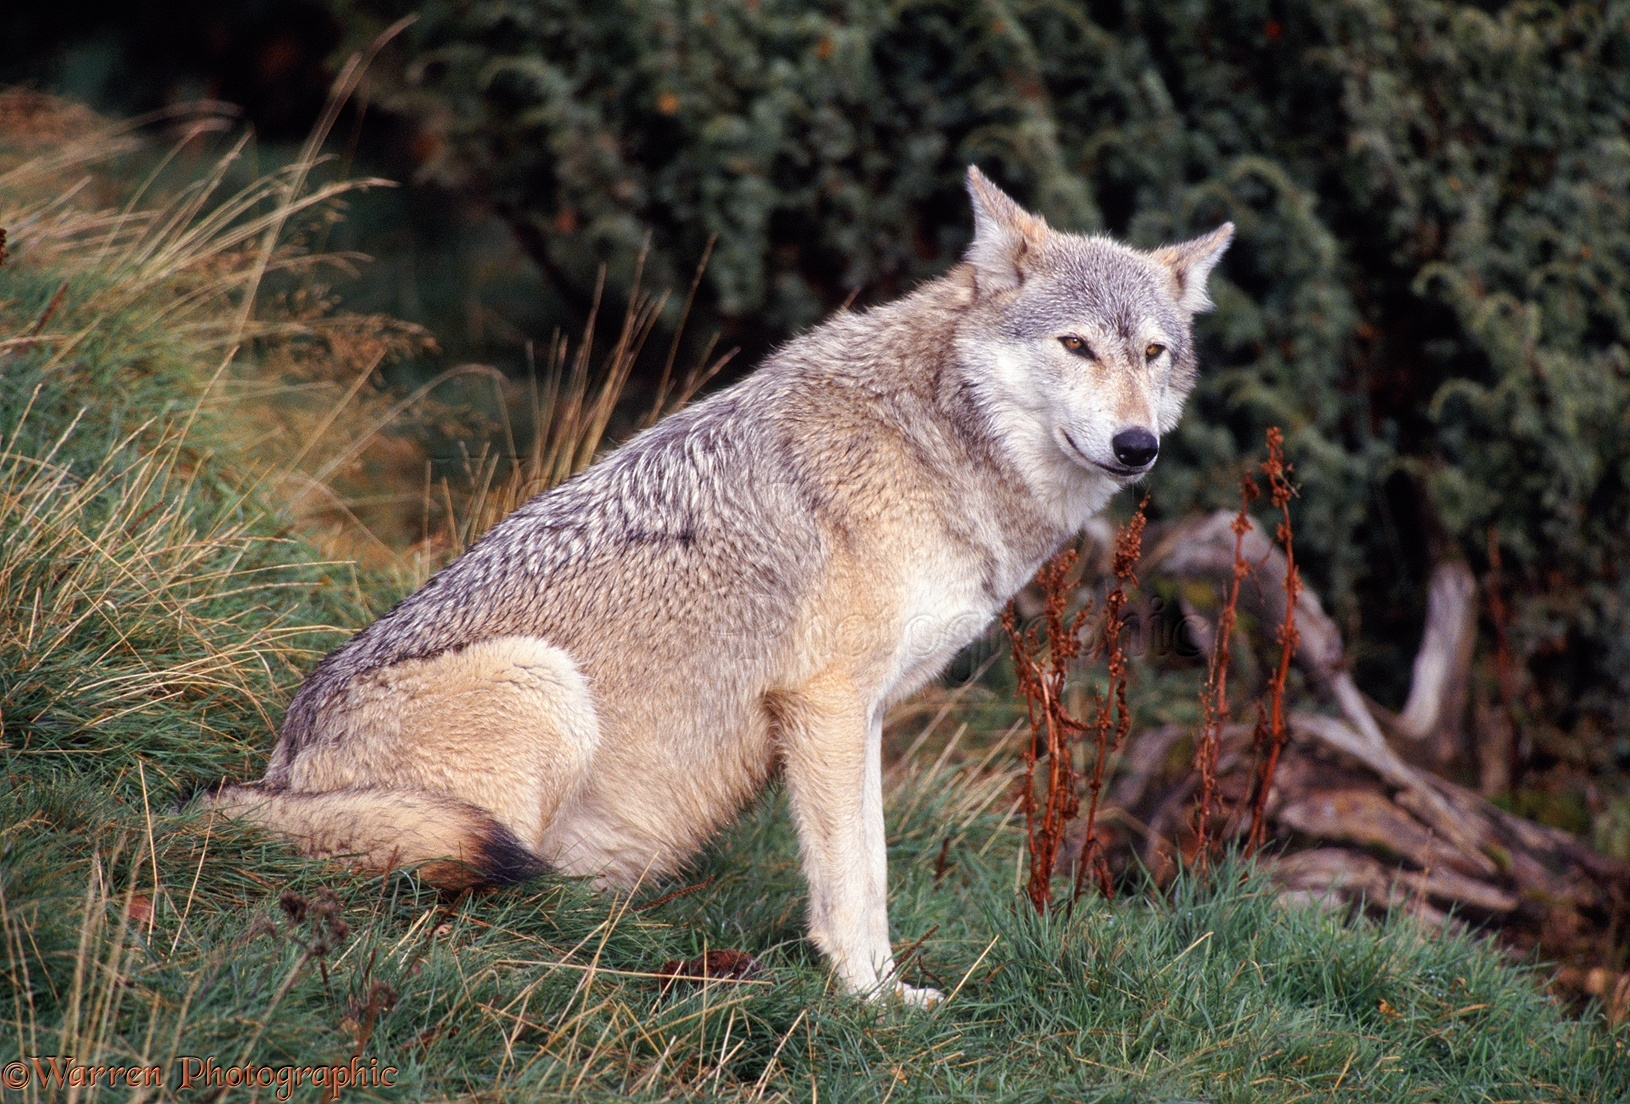 Wolf sitting down side view - photo#25